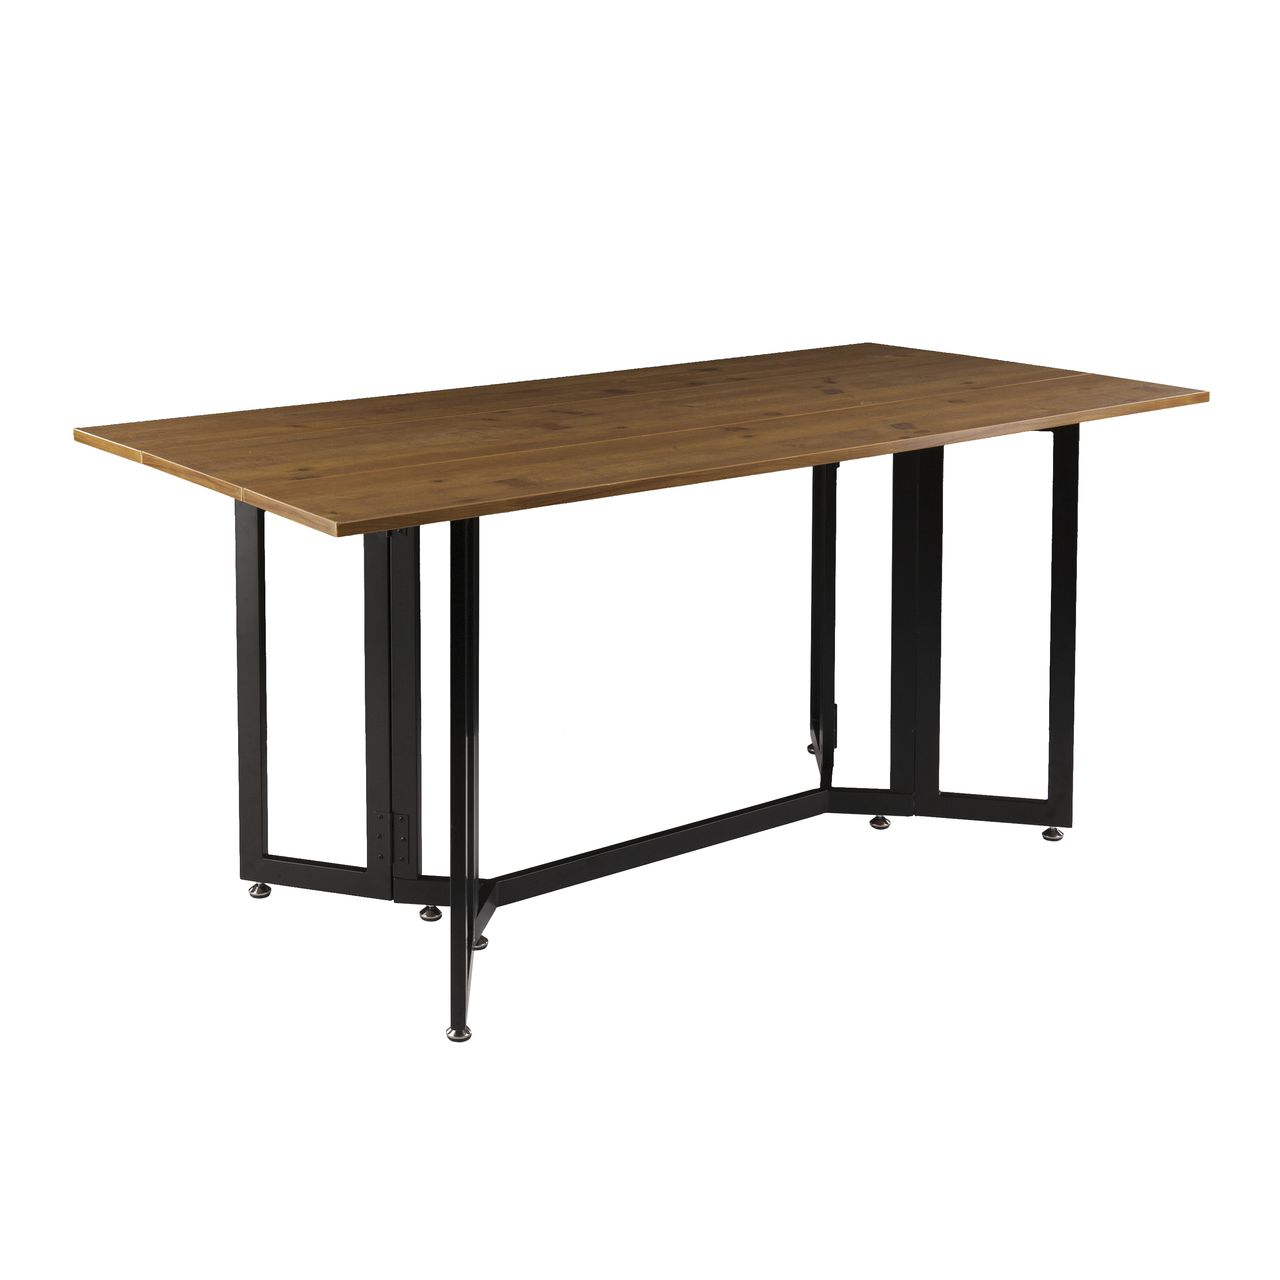 Holly & Martin Driness Drop Leaf Table in Weathered Oak / Black